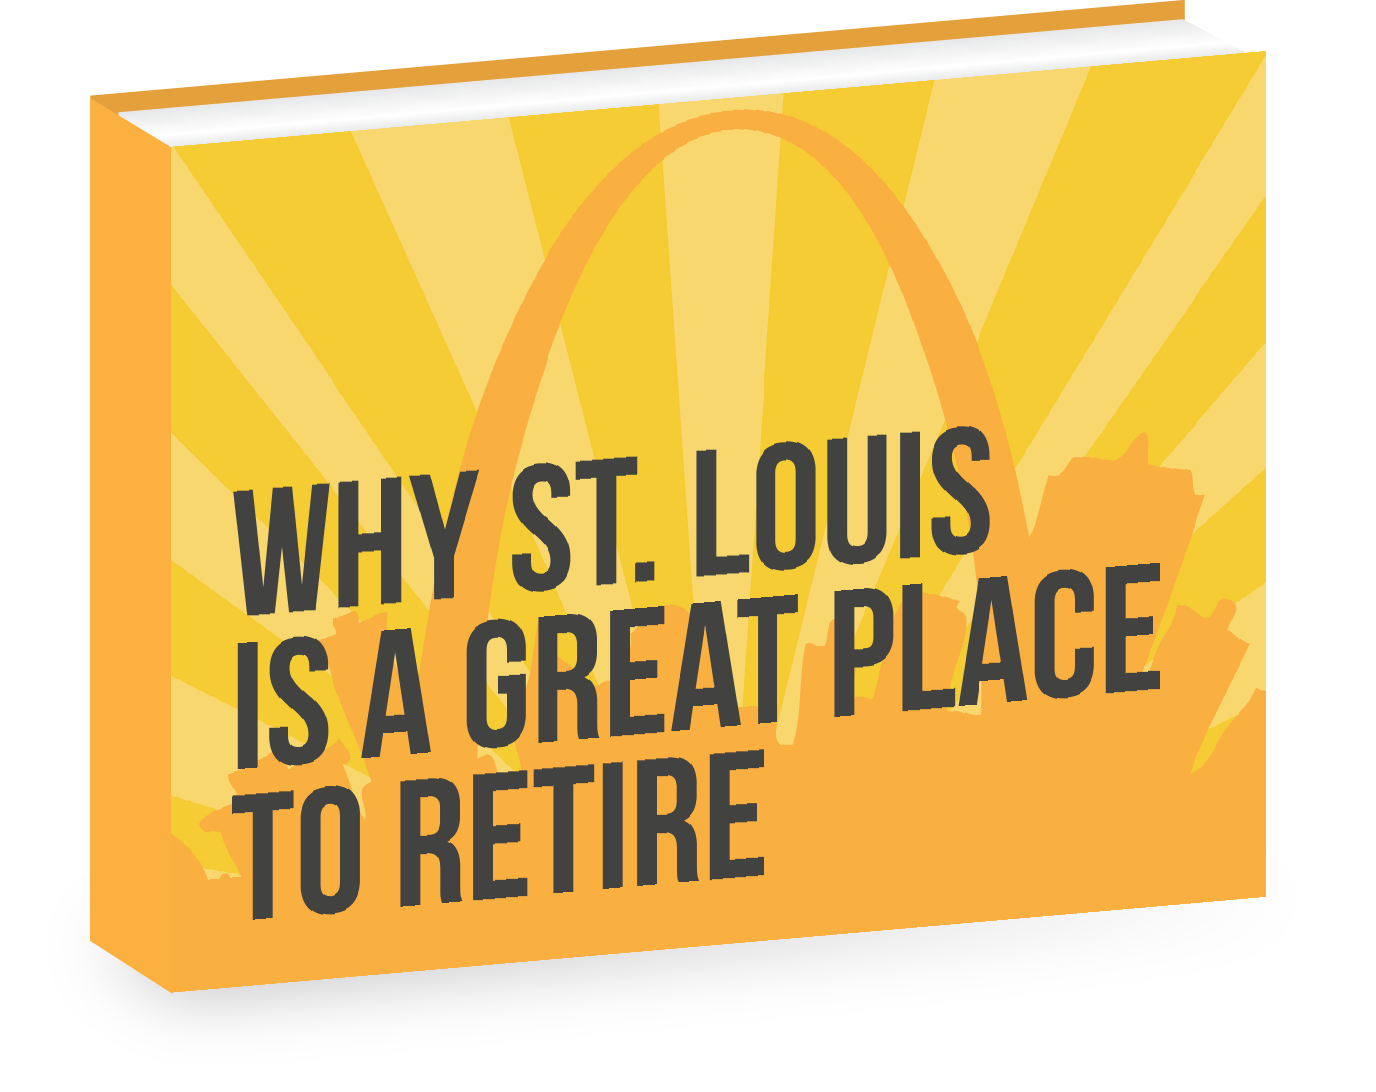 Book_Why_STL_is_a_great_place_to_retire.png